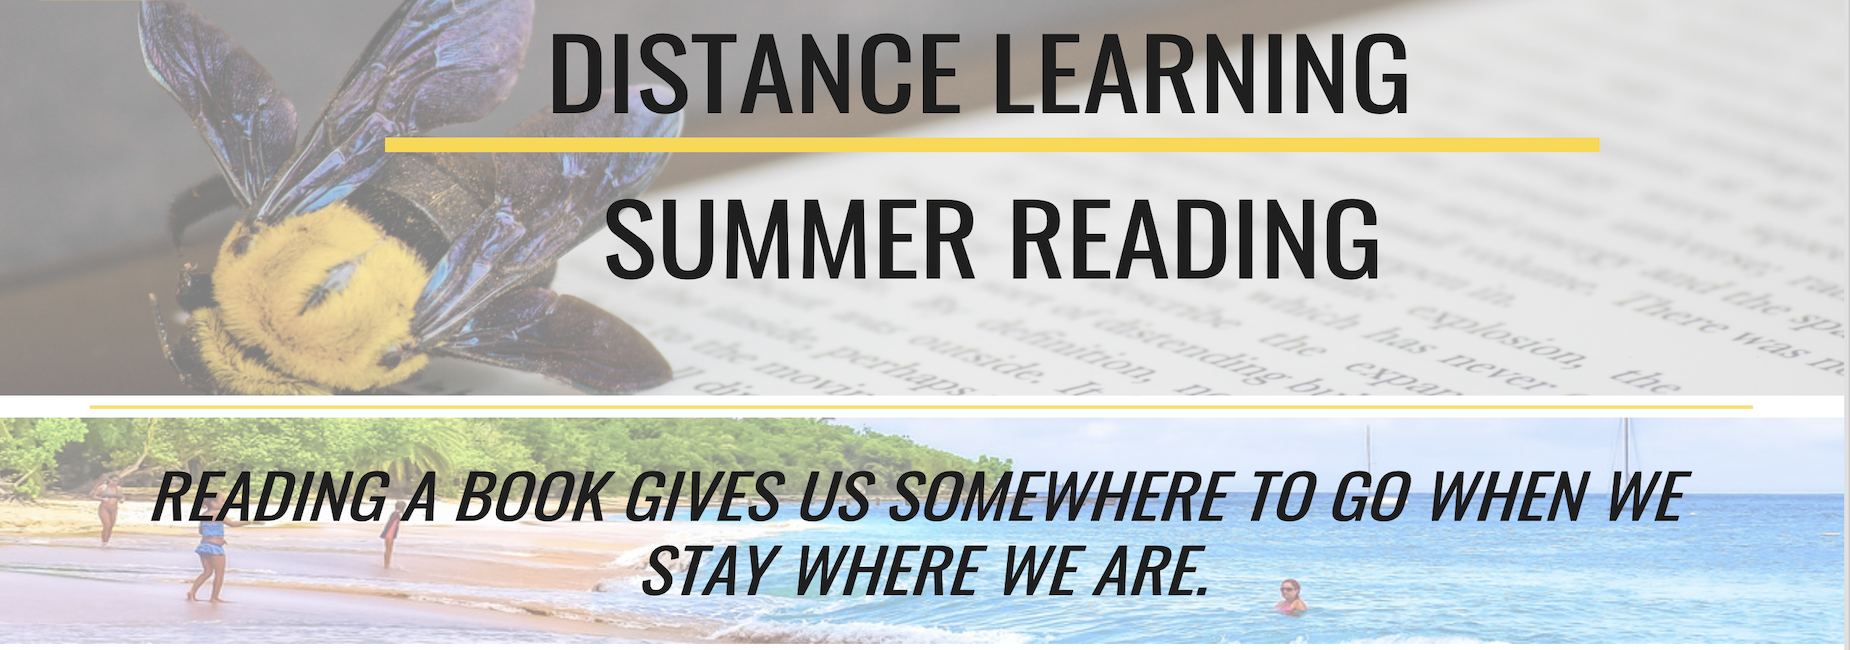 distance learning summer reading